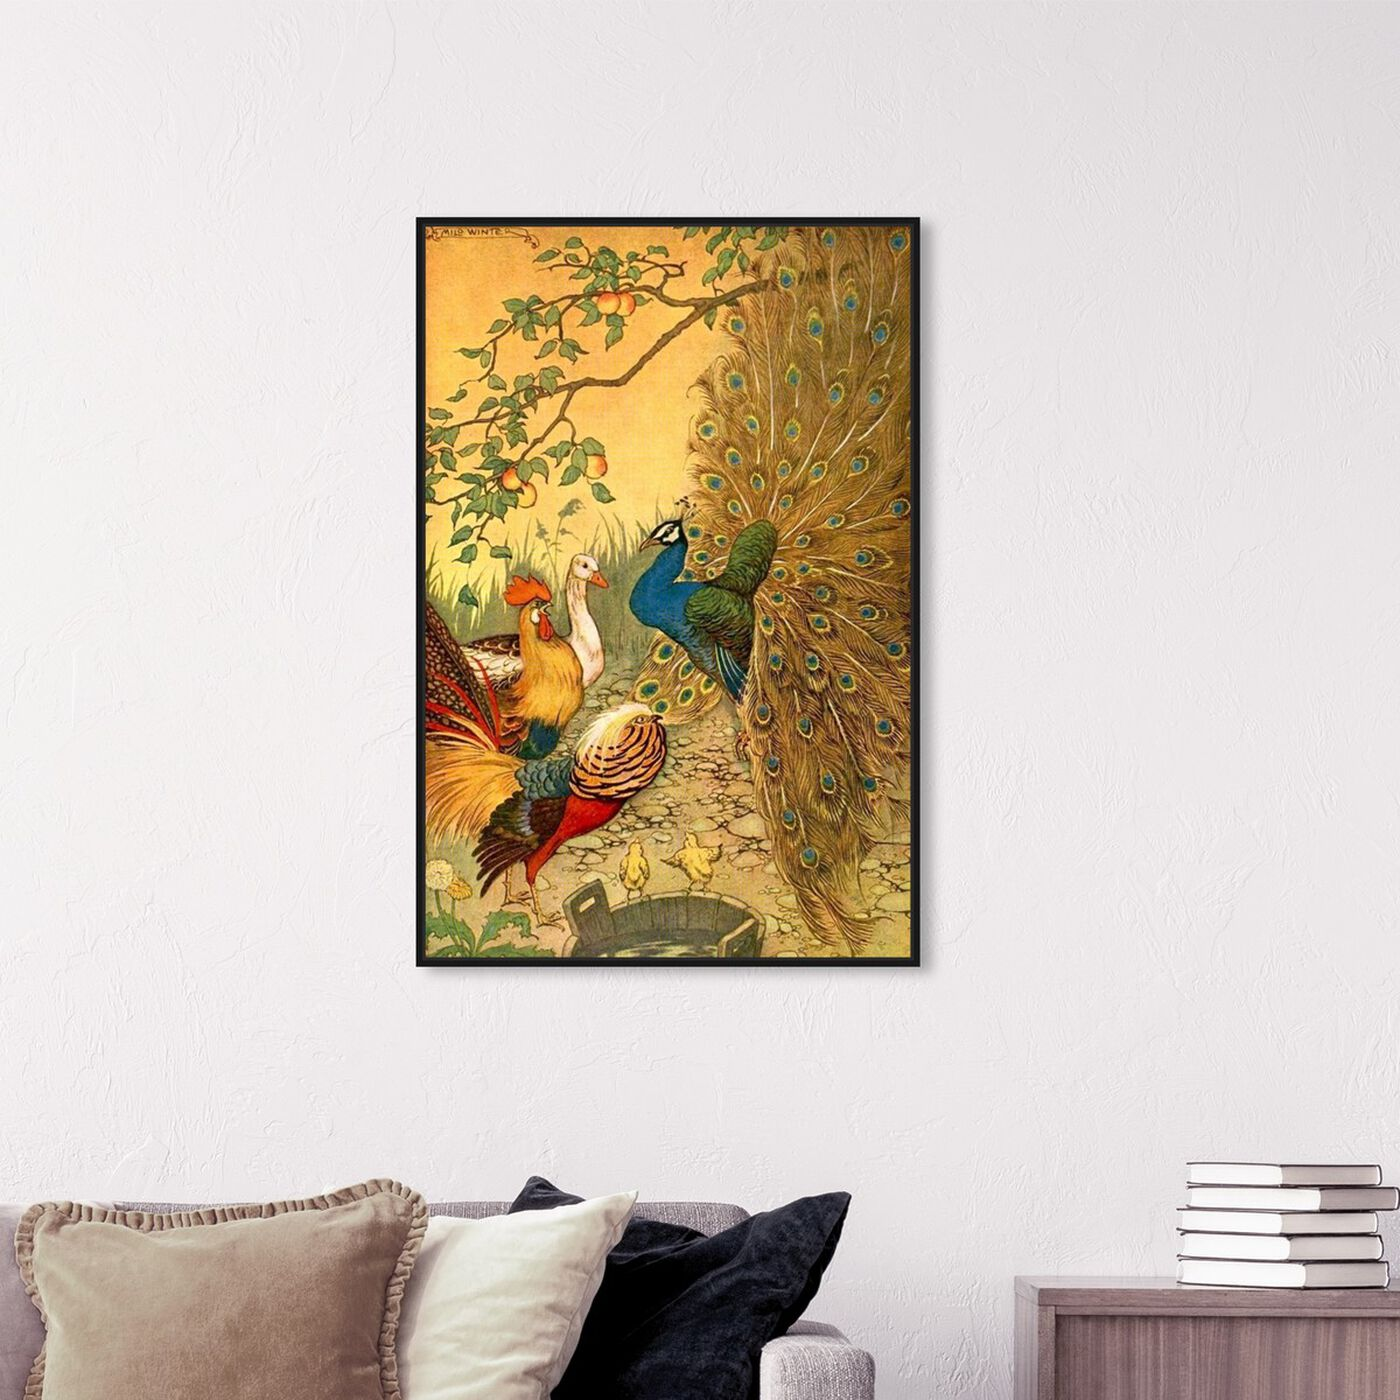 Hanging view of The Peacock featuring animals and birds art.